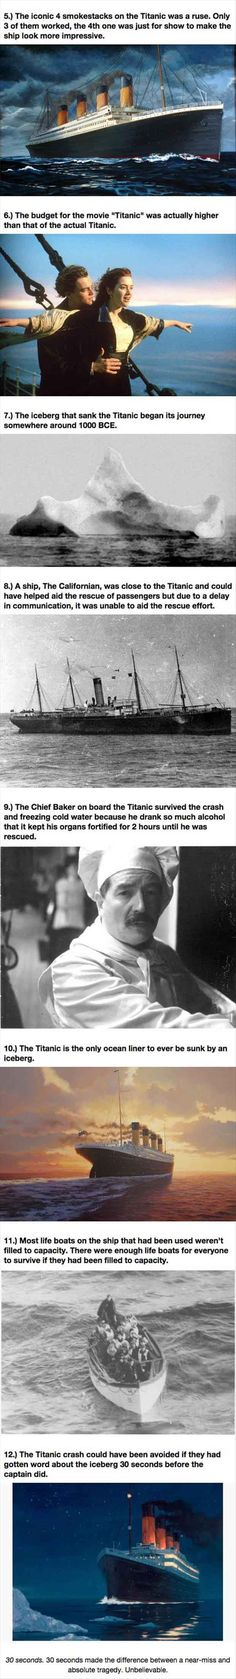 WOW: 2 of 2 list of Titanic facts I never knew! Numbers 8, 11 and 12, huge FAILS.